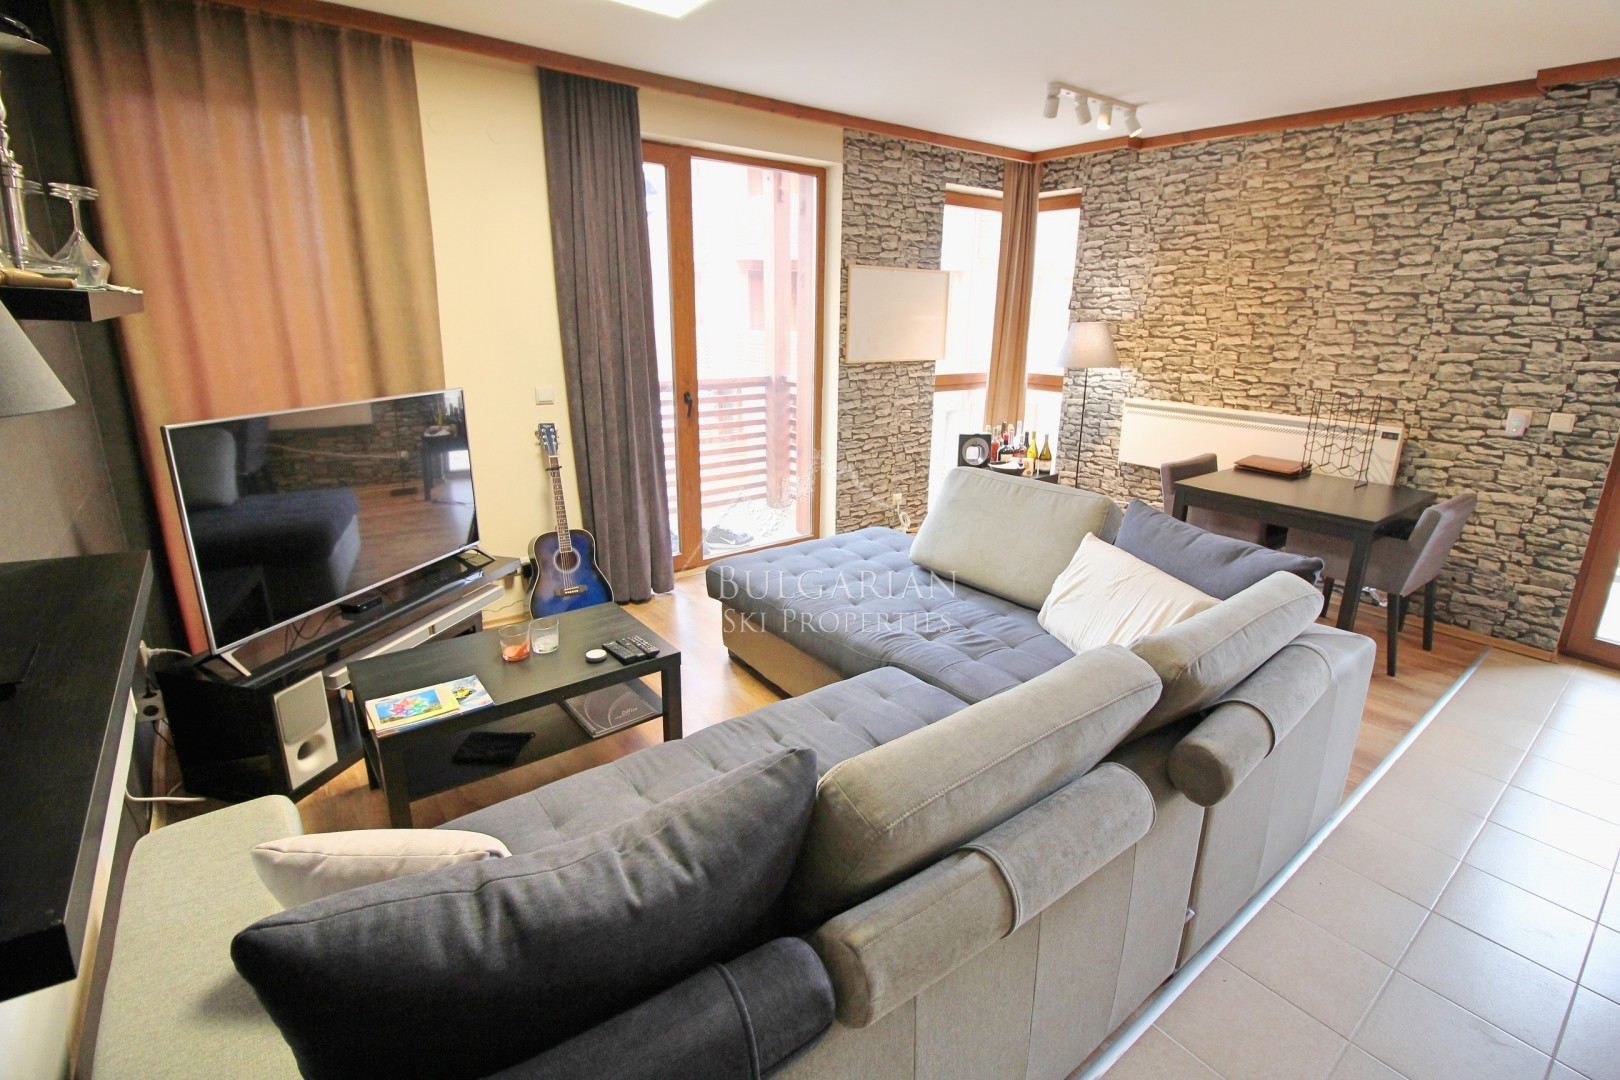 St Ivan Ski & Spa, Bansko: modernly furnished two-bedroom apartment for sale